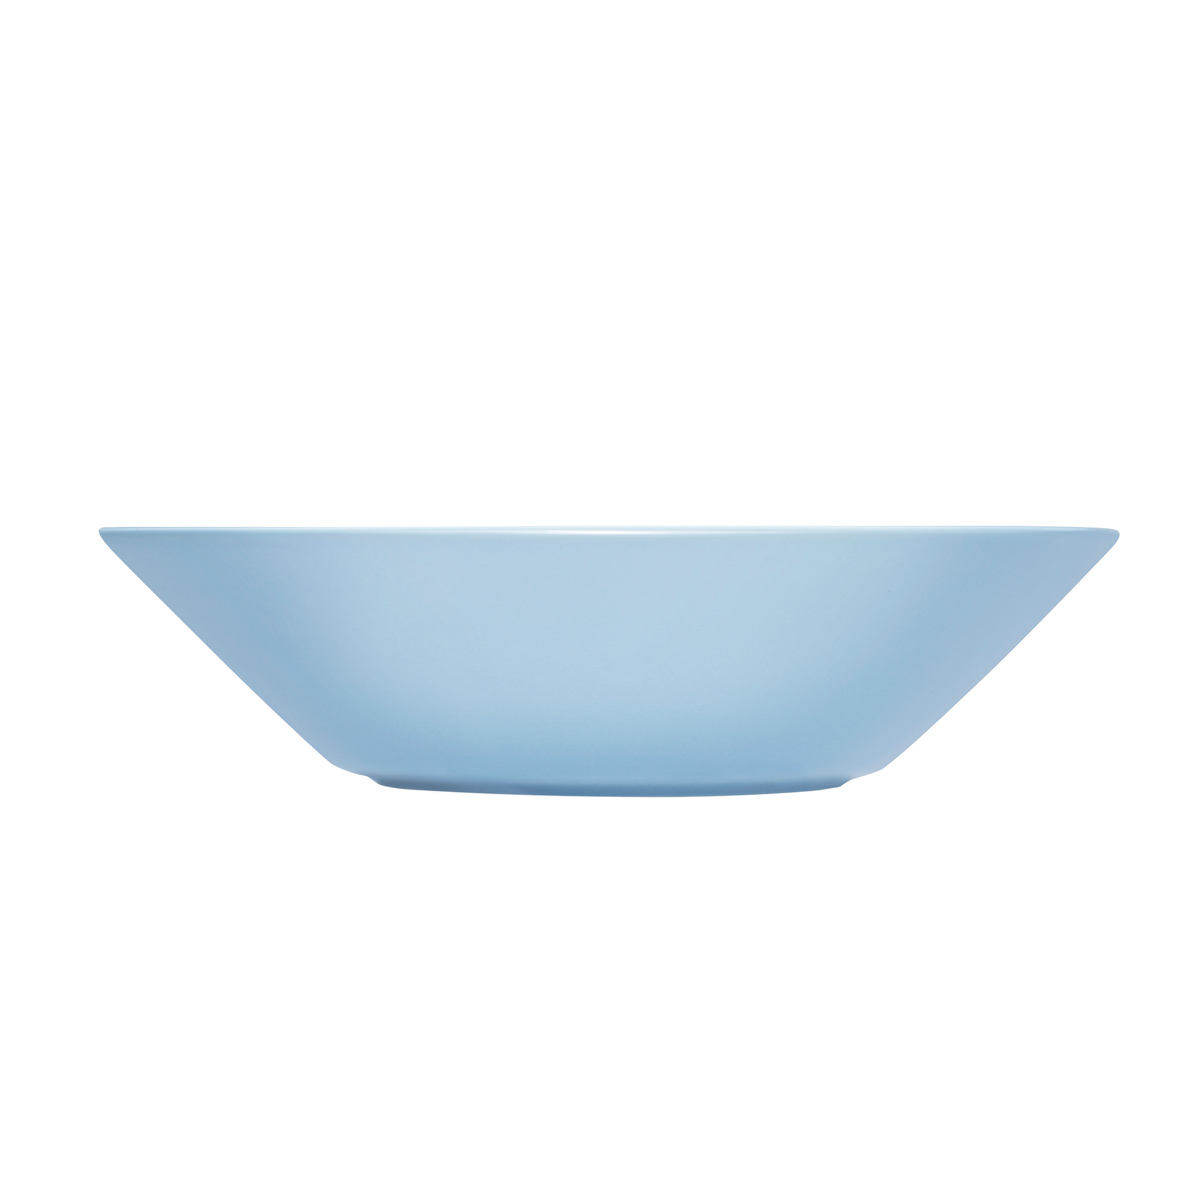 iittala teema light blue pasta bowl iittala teema light blue dinnerware. Black Bedroom Furniture Sets. Home Design Ideas